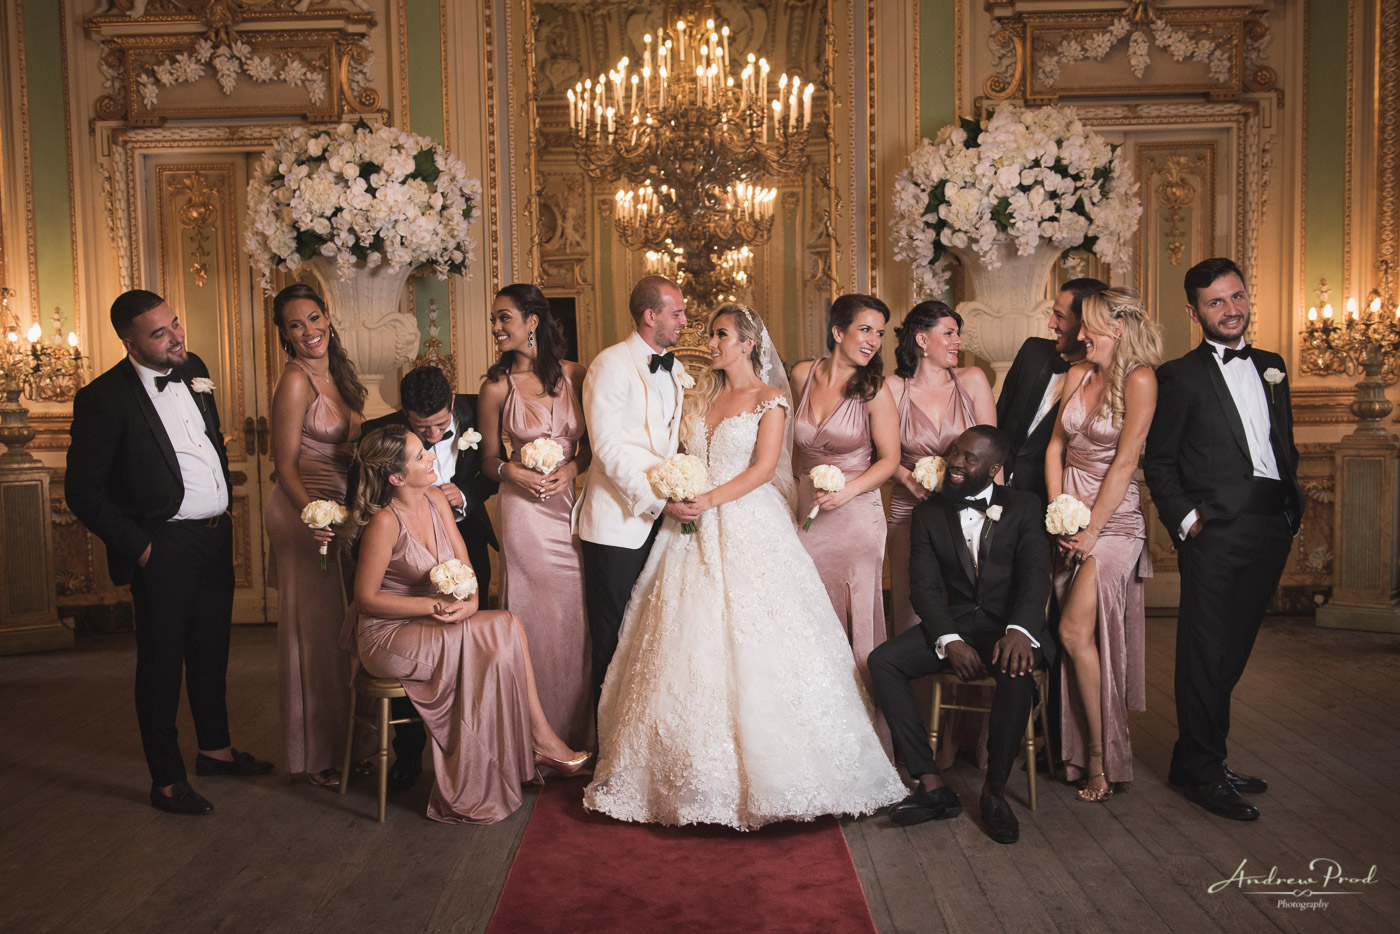 Palazzo Parisio weddings